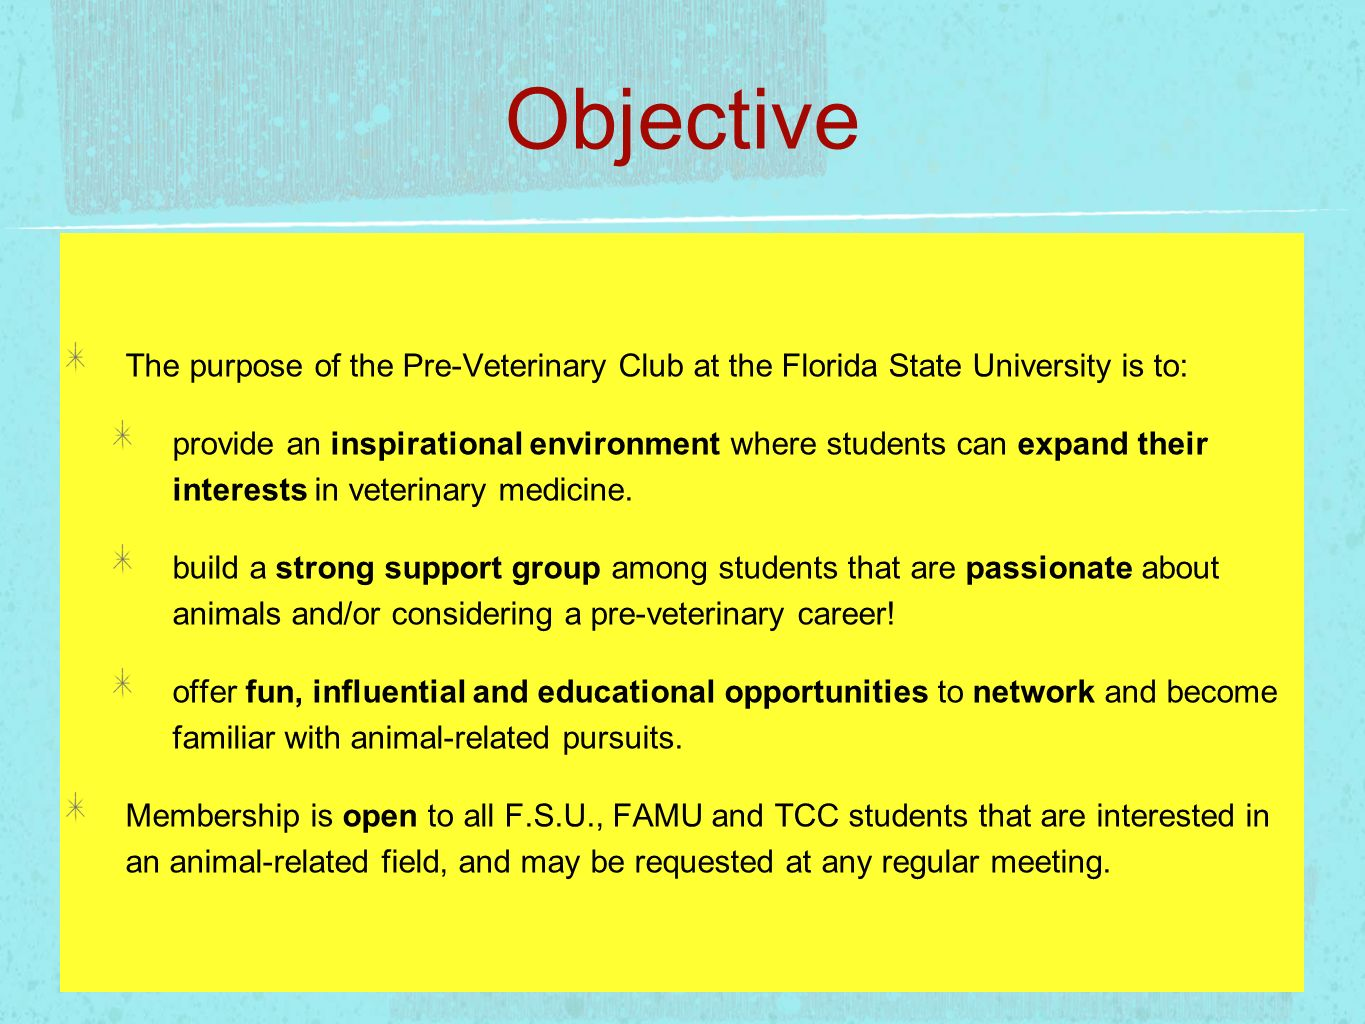 Objective The purpose of the Pre-Veterinary Club at the Florida State University is to: provide an inspirational environment where students can expand